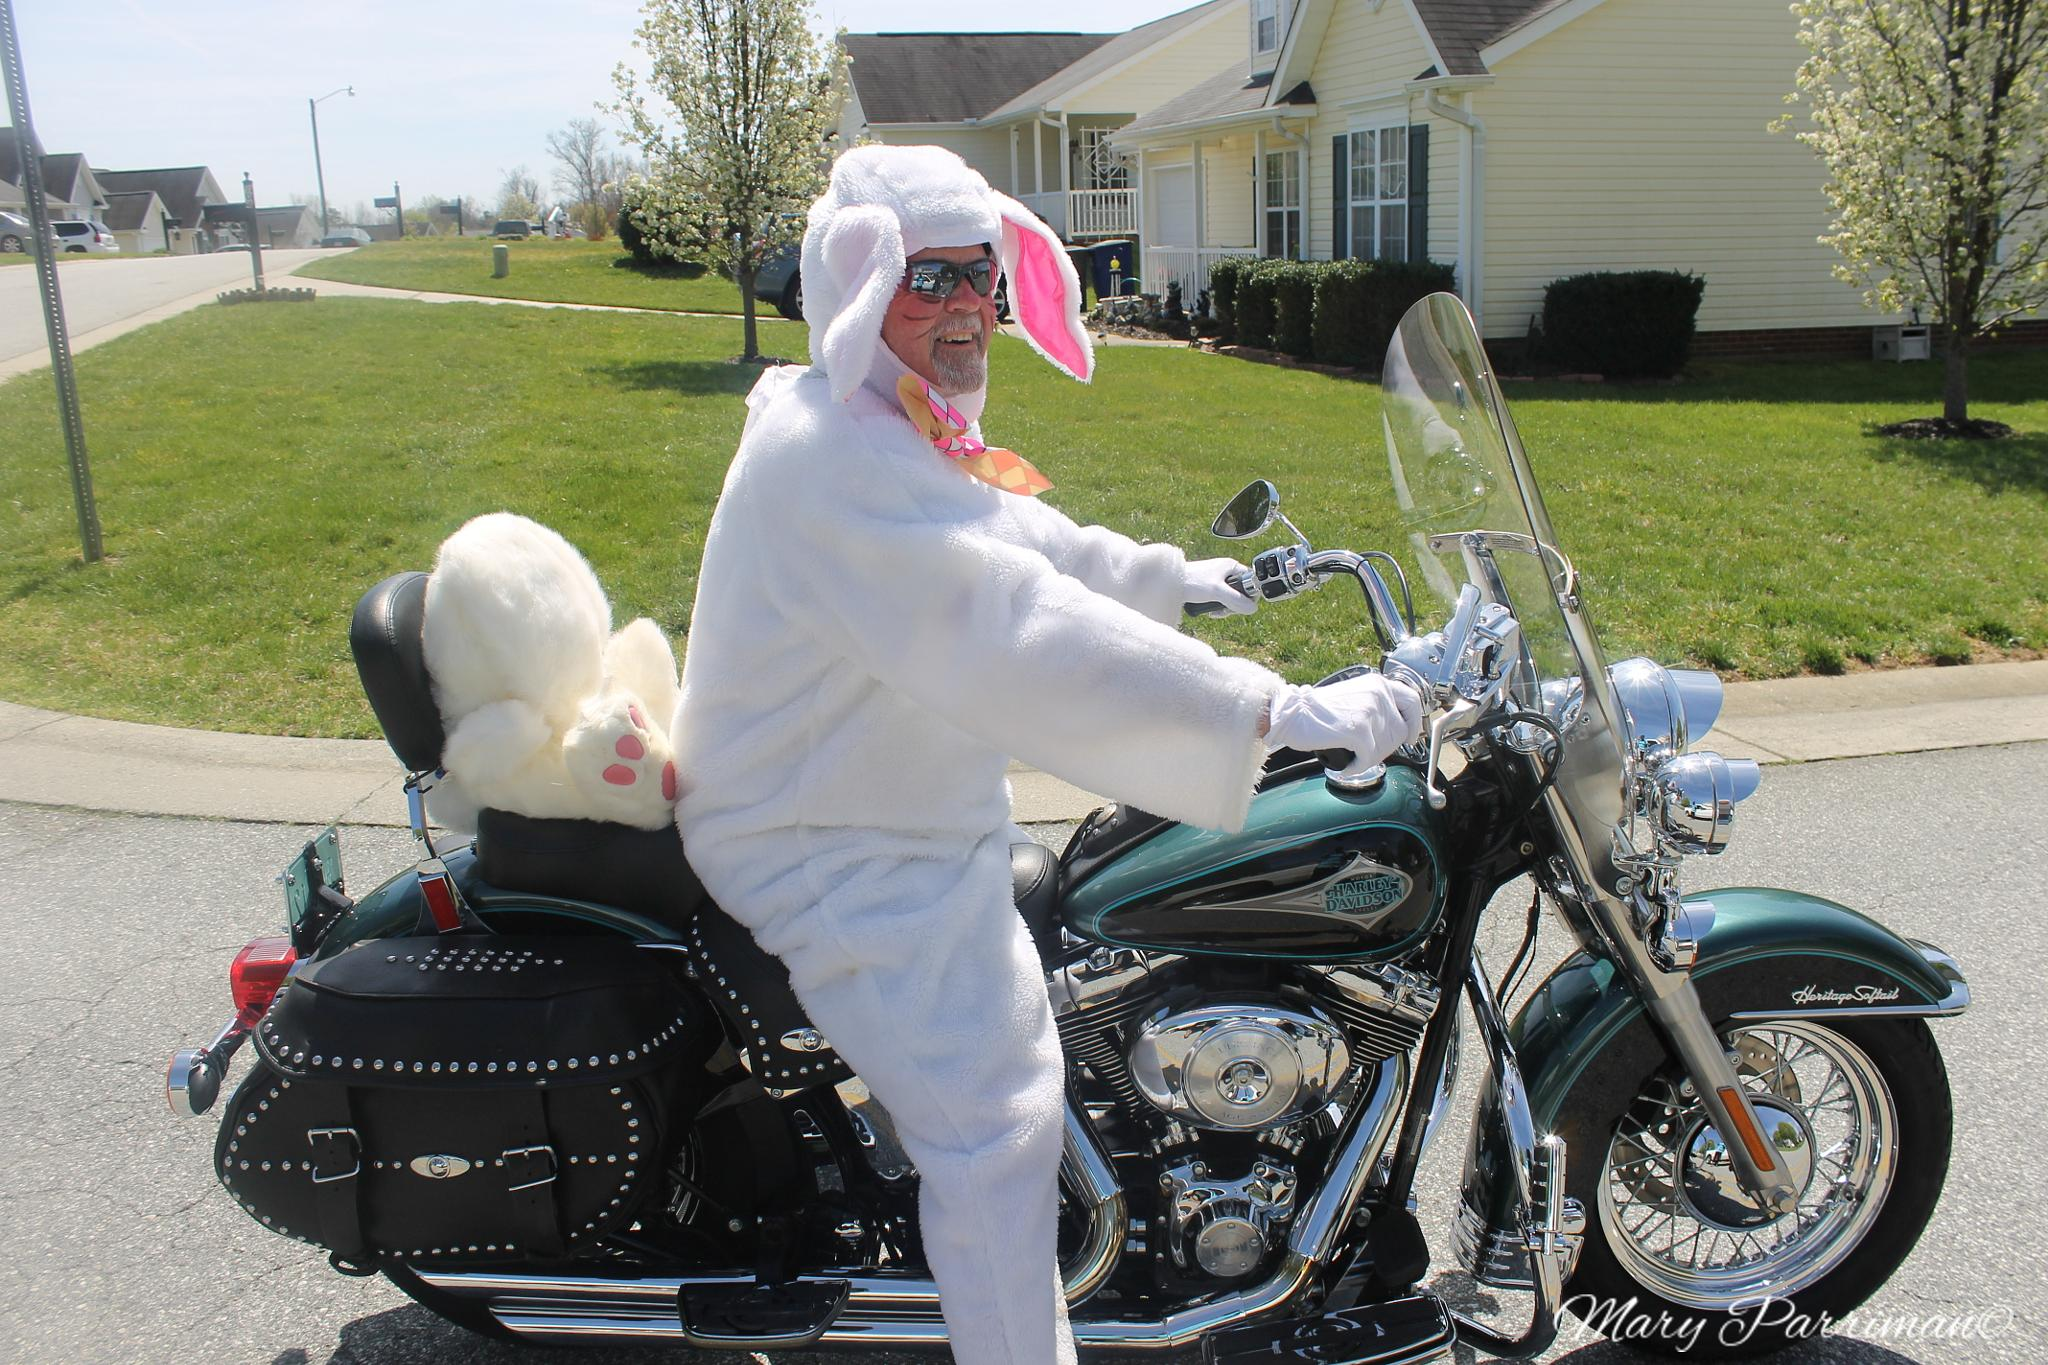 The Cool Easter Bunny by mary parriman